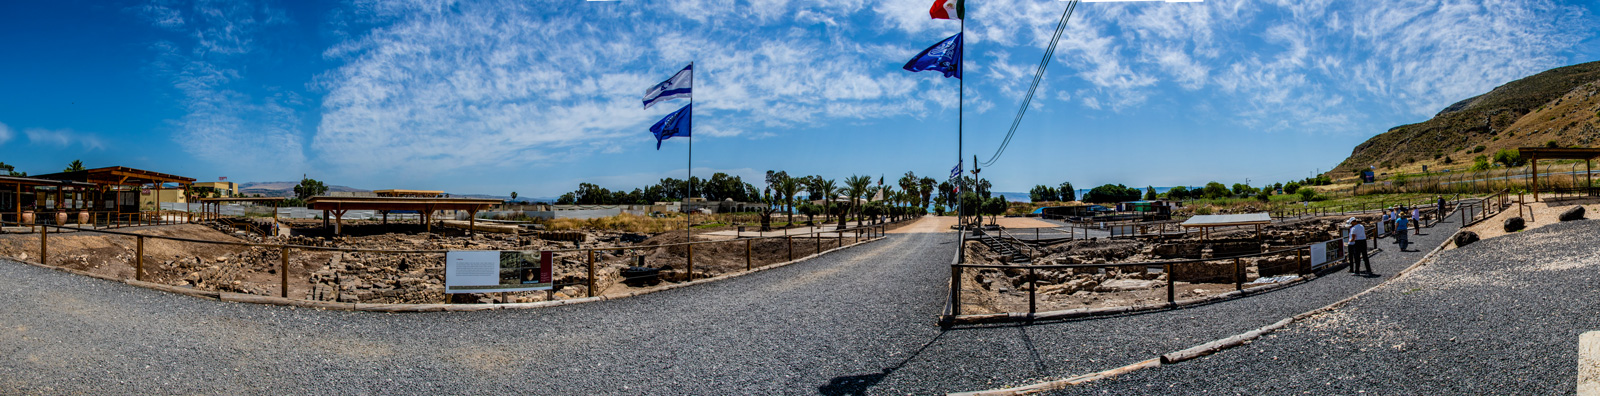 A panorama of the new excavations in Mary Magdalene's hometown of Magdala. The Israeli Antiquities Authority has stated it is the most important biblical archaeological discovery of the 21st century!